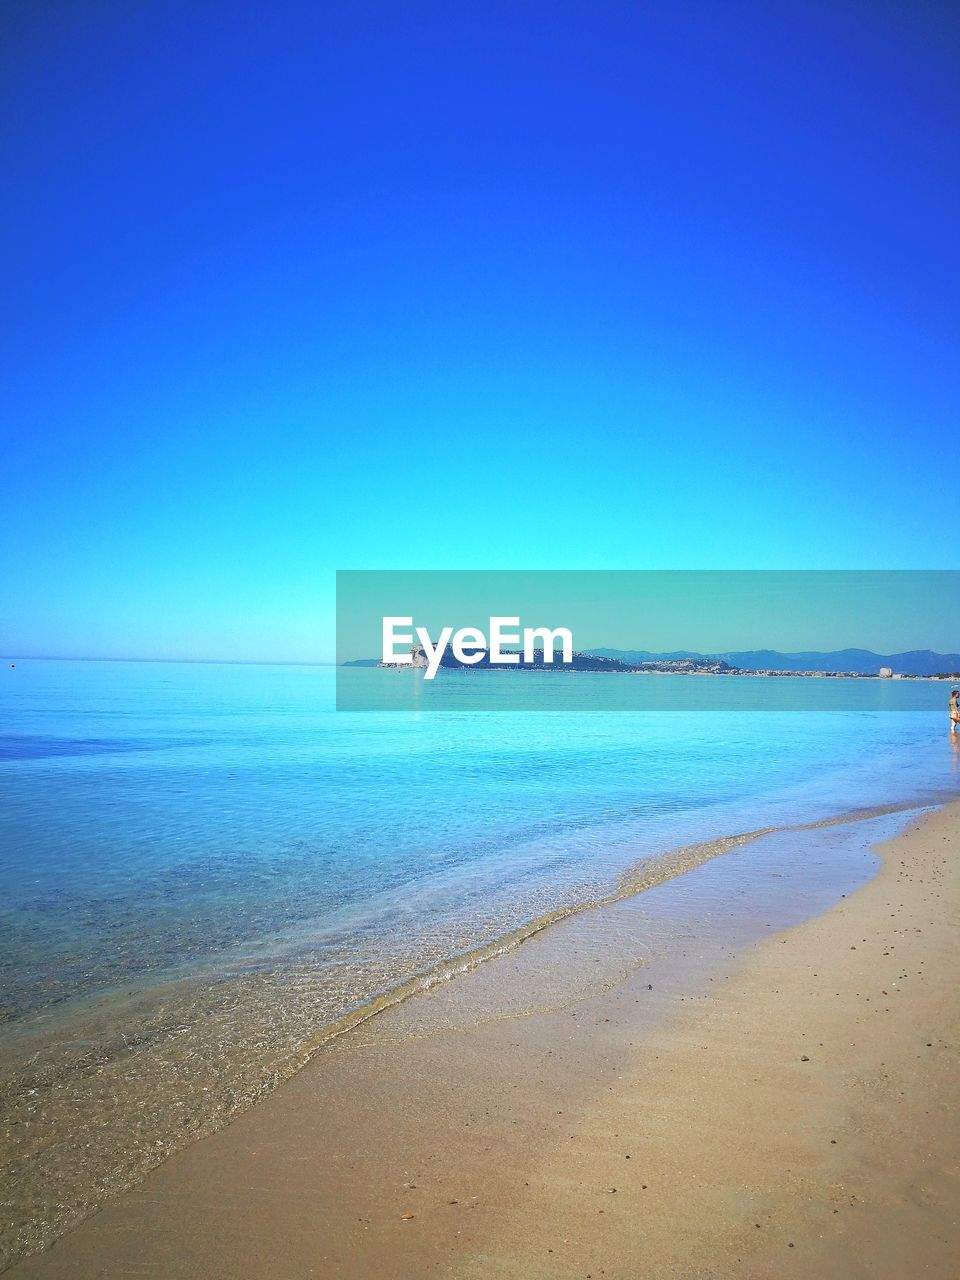 water, sea, beach, sky, scenics - nature, land, beauty in nature, tranquility, tranquil scene, blue, horizon over water, horizon, clear sky, sand, nature, copy space, idyllic, no people, day, outdoors